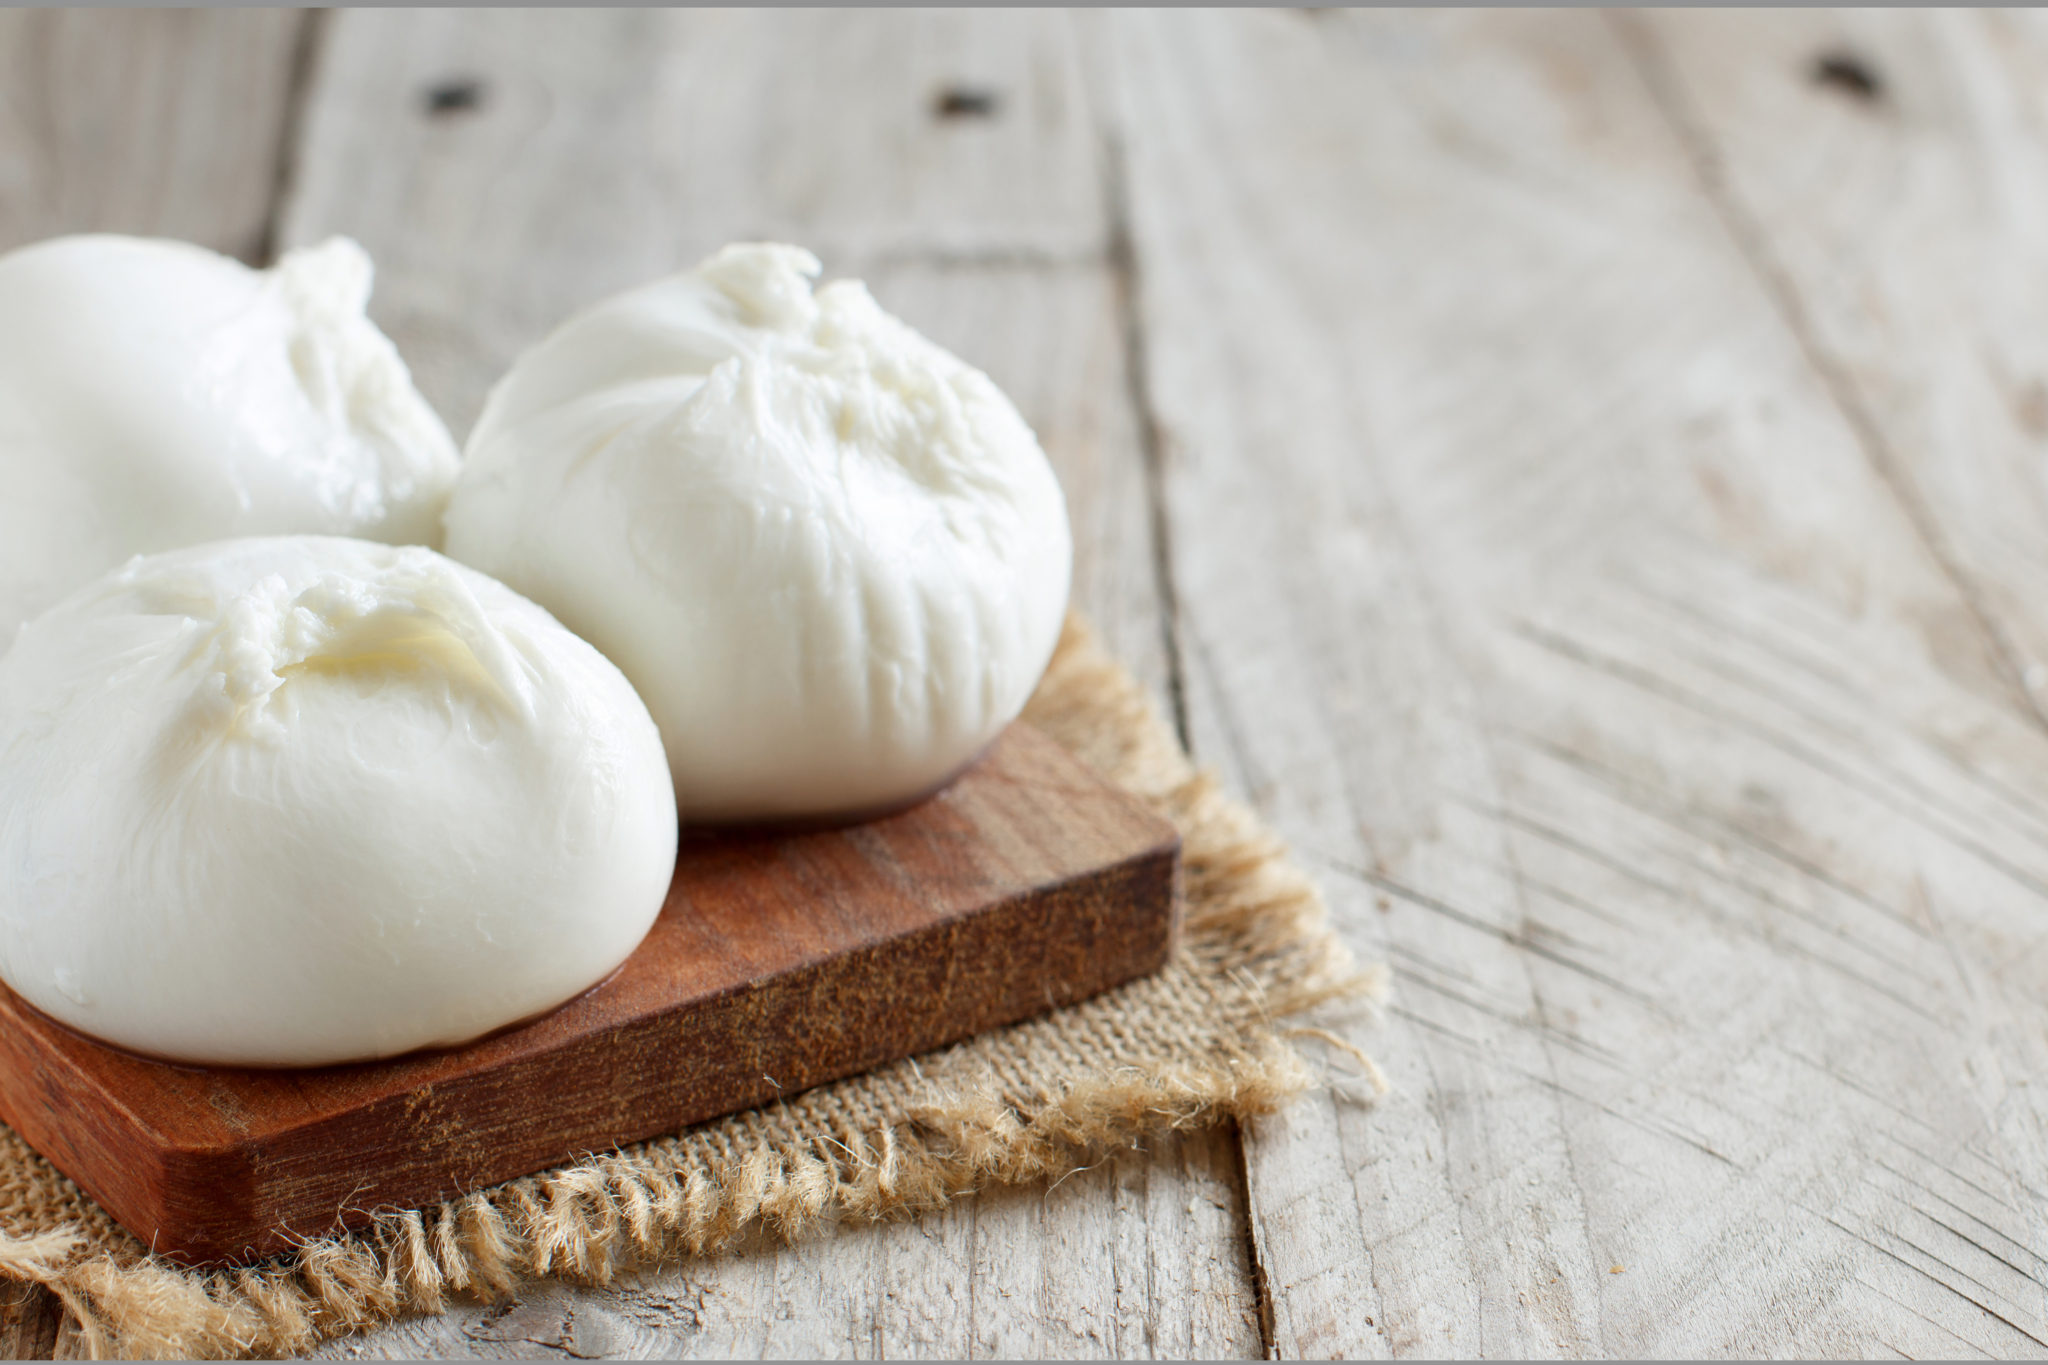 Burrata Cheese Producer in Salmon Arm, BC